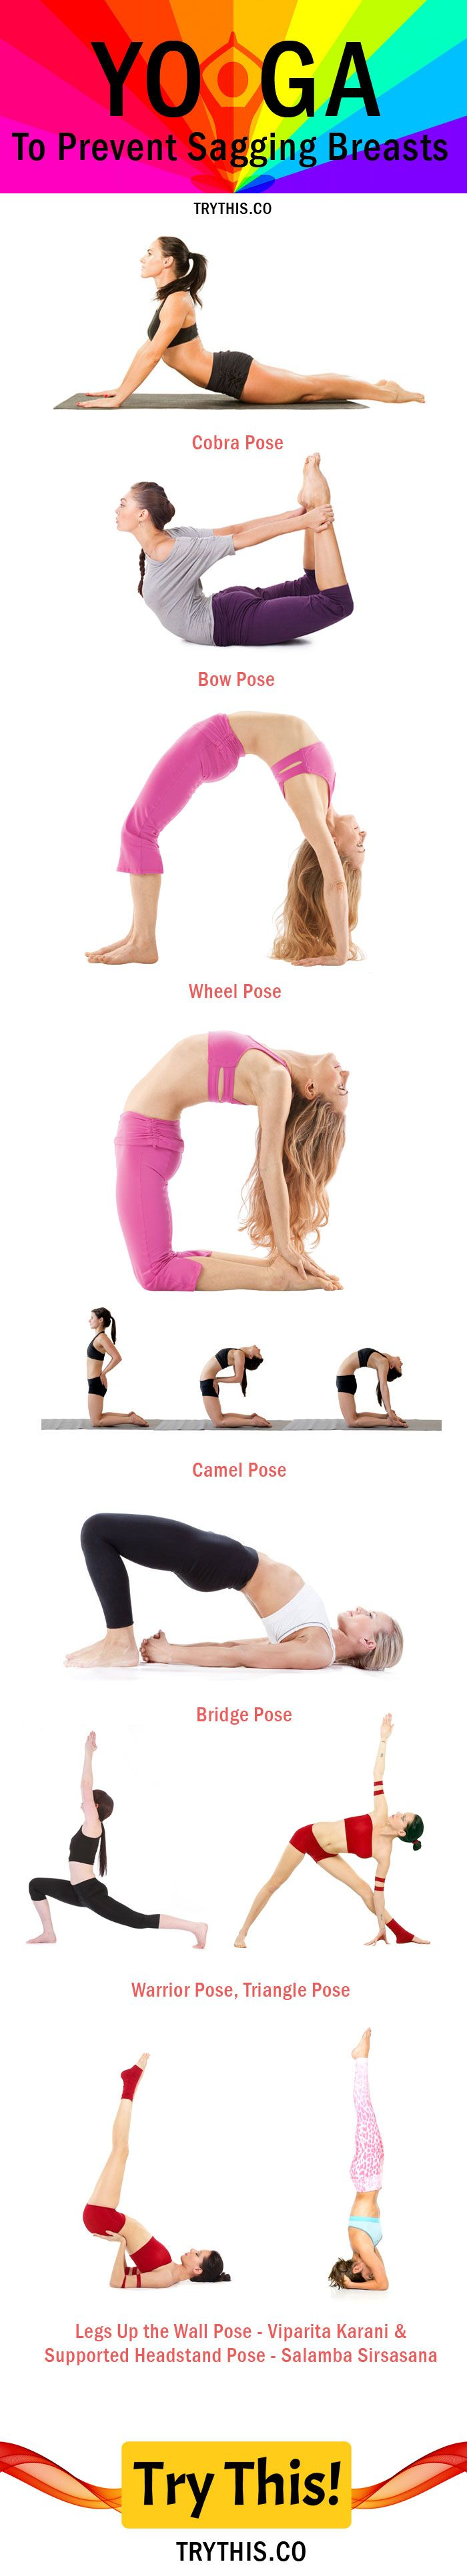 Yoga Poses to Prevent Sagging Breasts http://www.yogaweightloss.net/best-yoga-position/